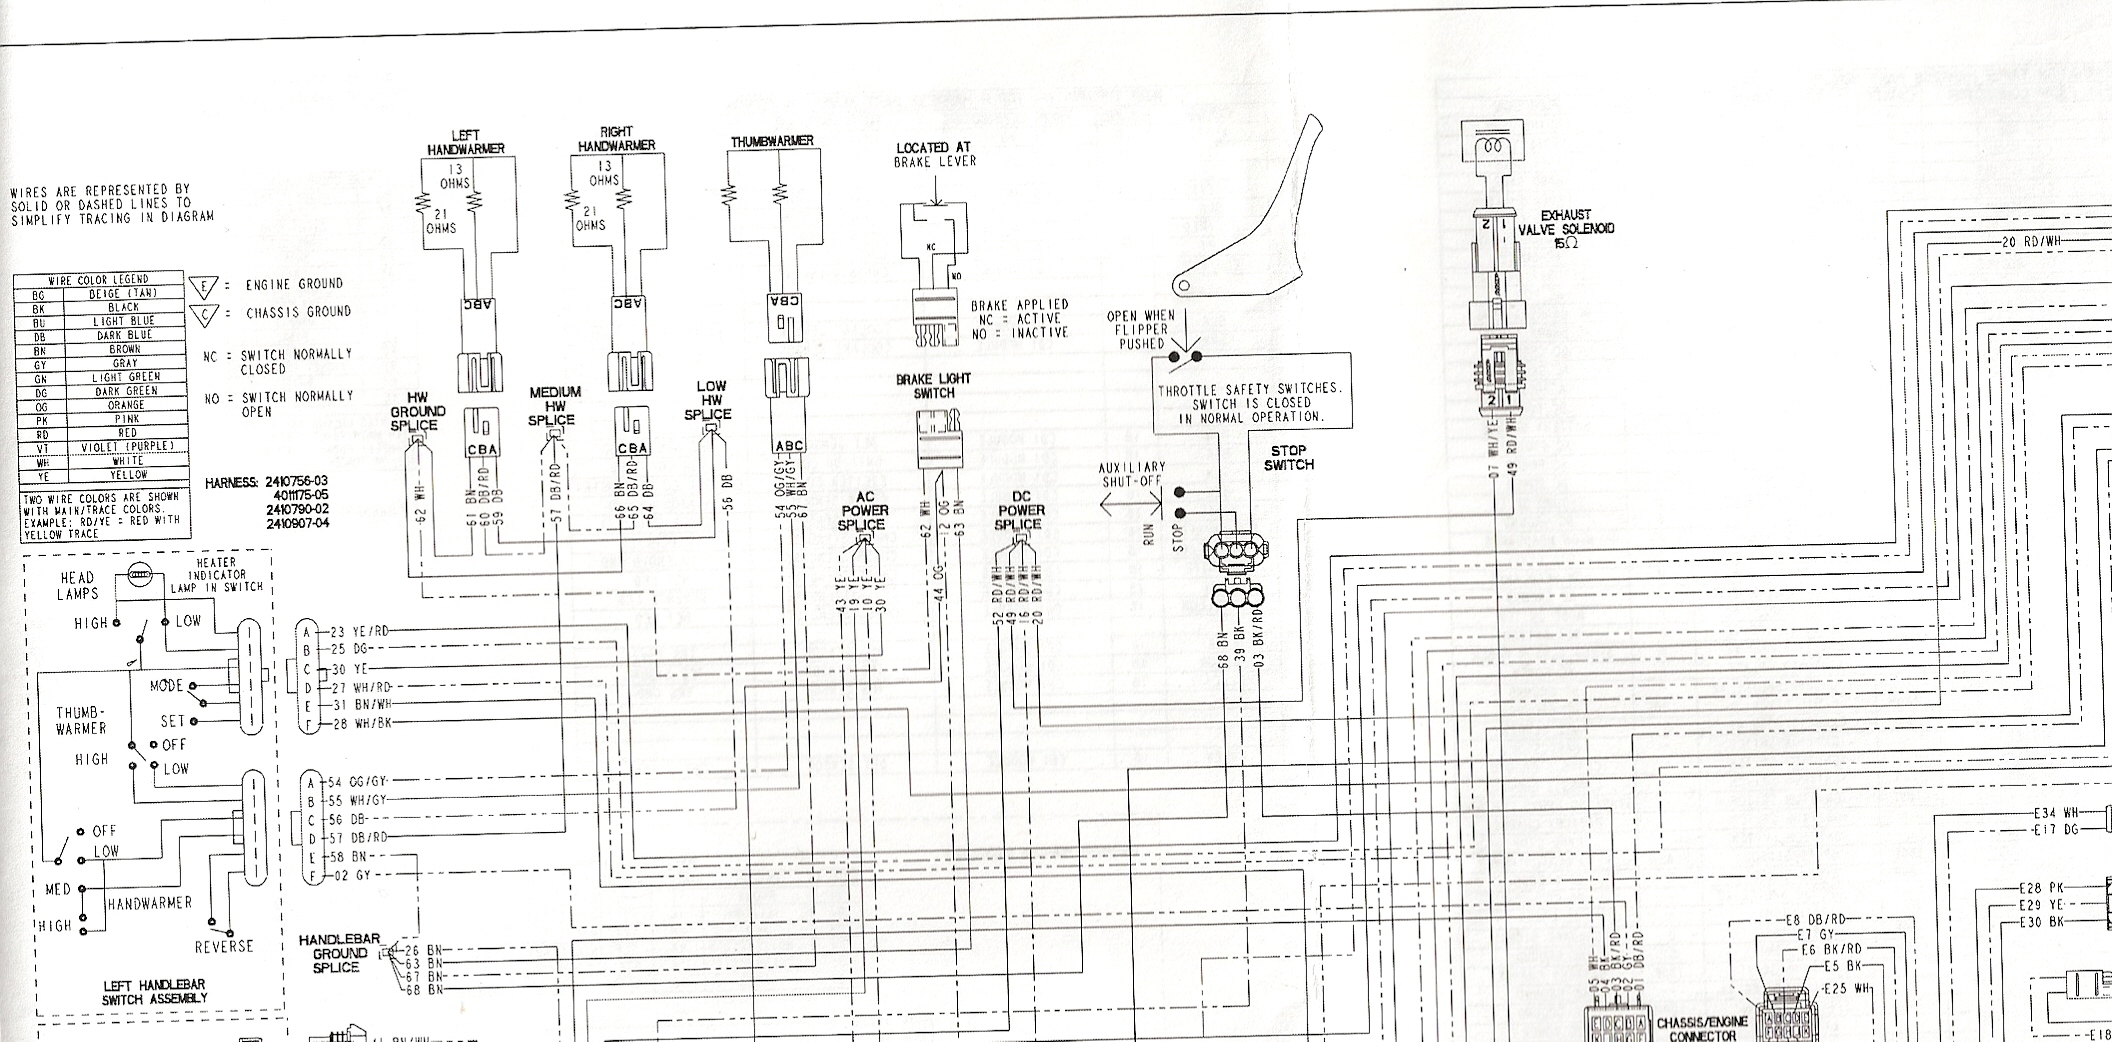 hight resolution of wiring diagram for 2002 polaris 325 magnum polaris 325 polaris atv wiring diagram polaris atv wiring diagram